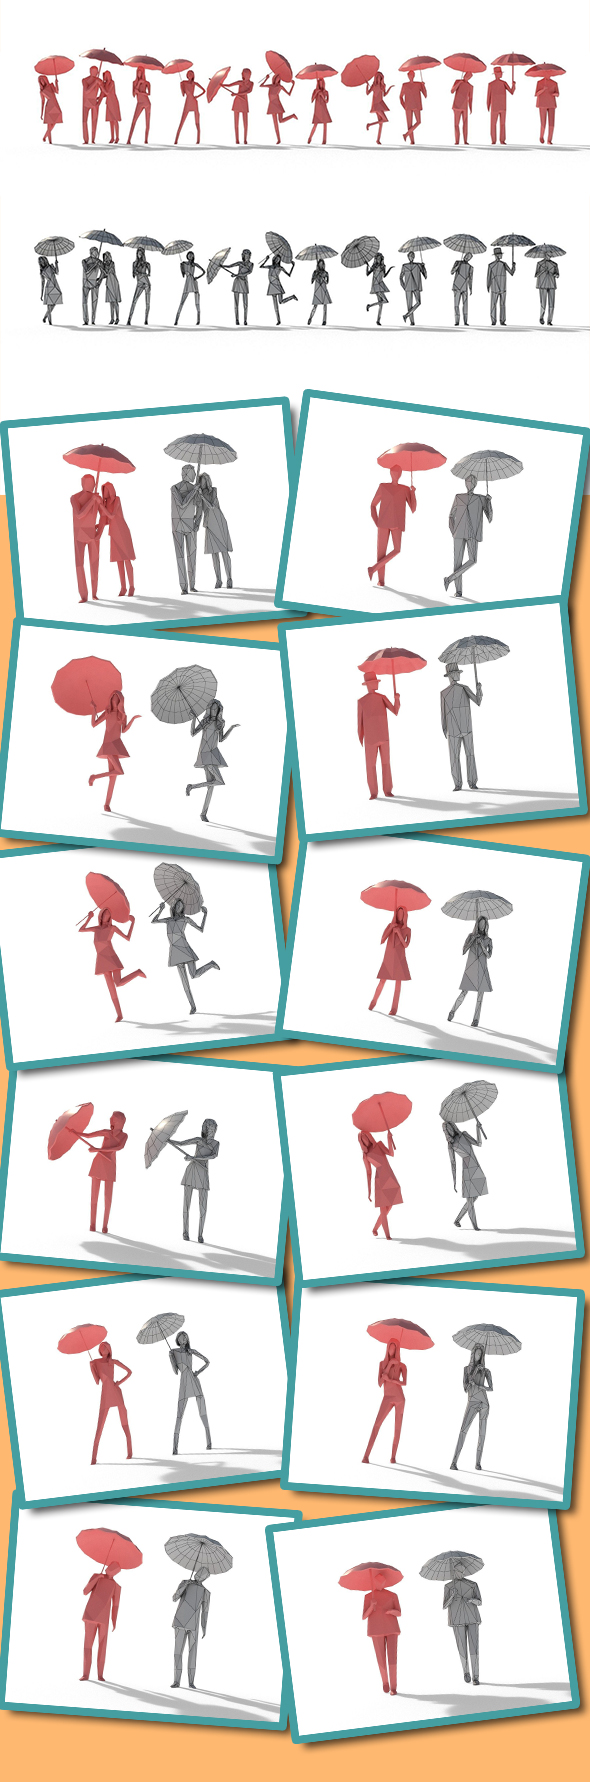 Low Poly Posed People Pack 11 - Umbrella - 3DOcean Item for Sale